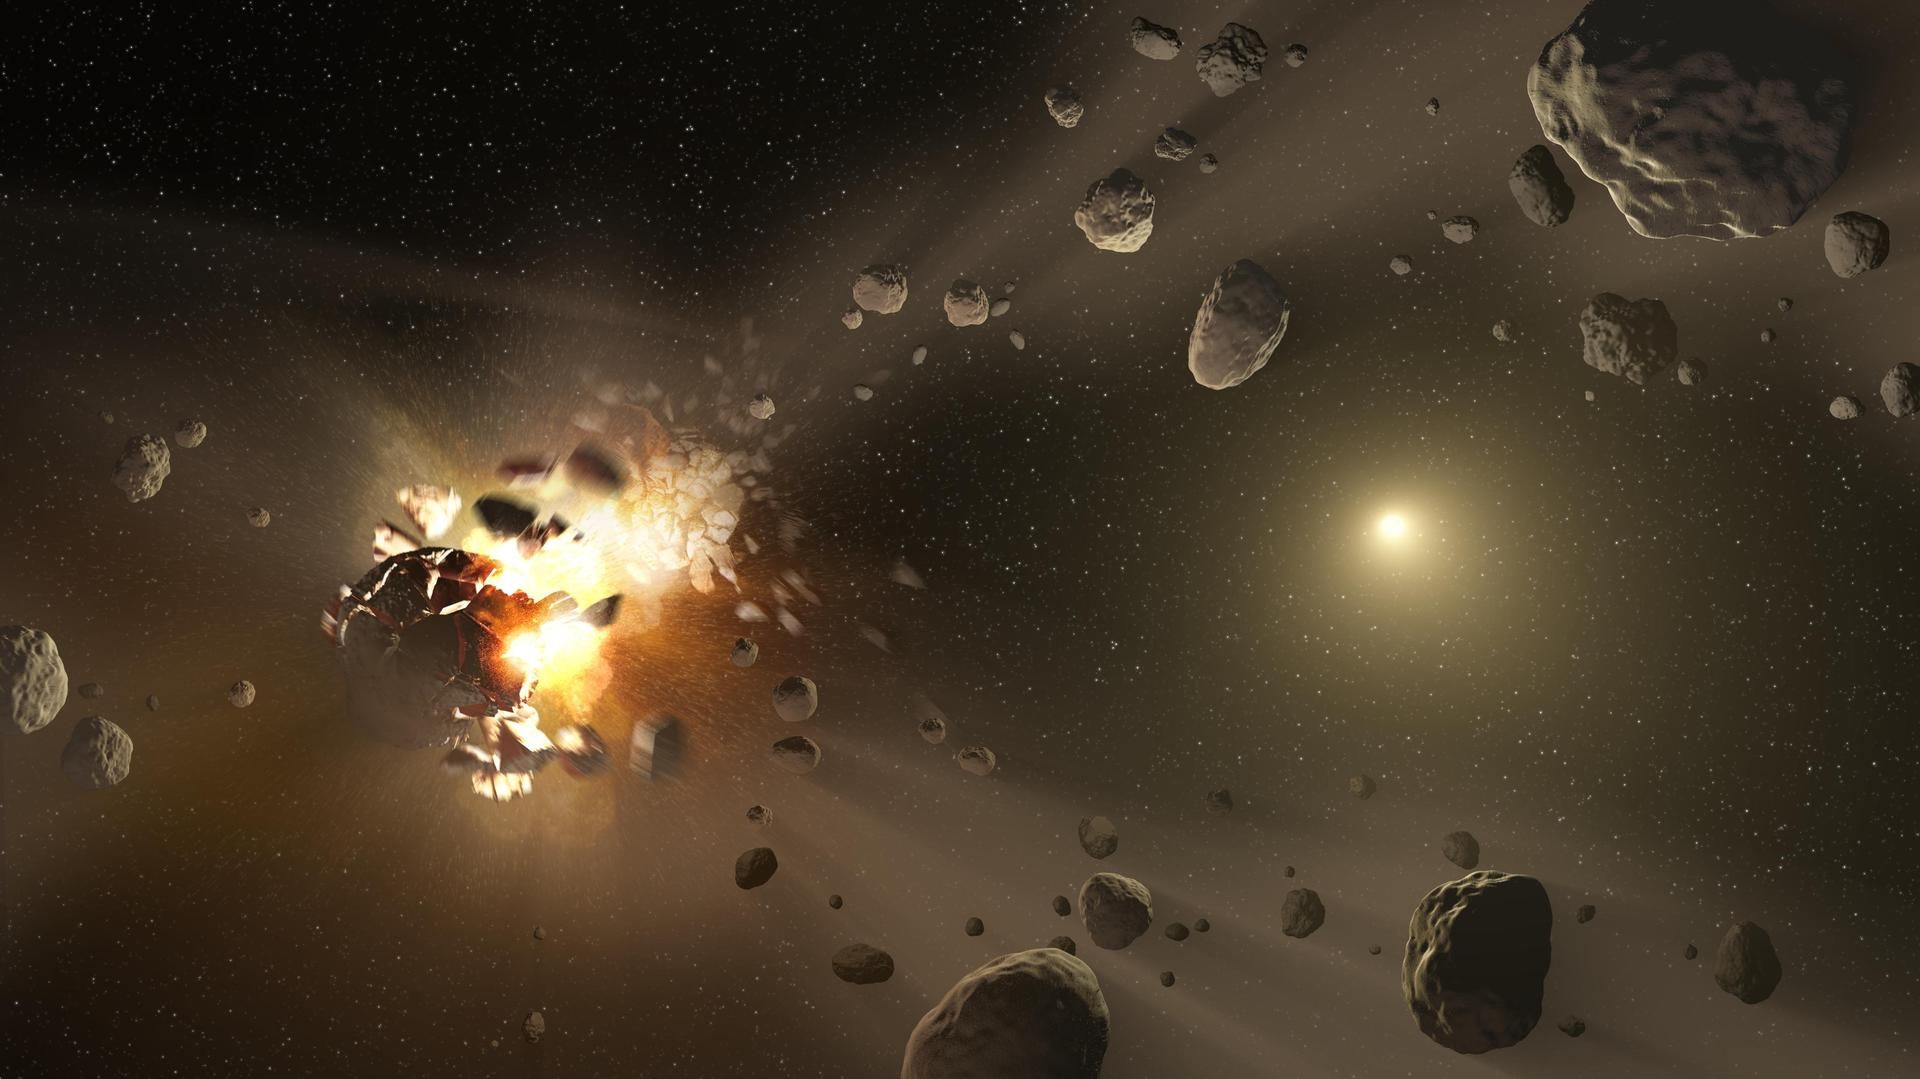 Researcher want to 'slice and dice' deadly asteroids with rocket-powered bombs, new paper says